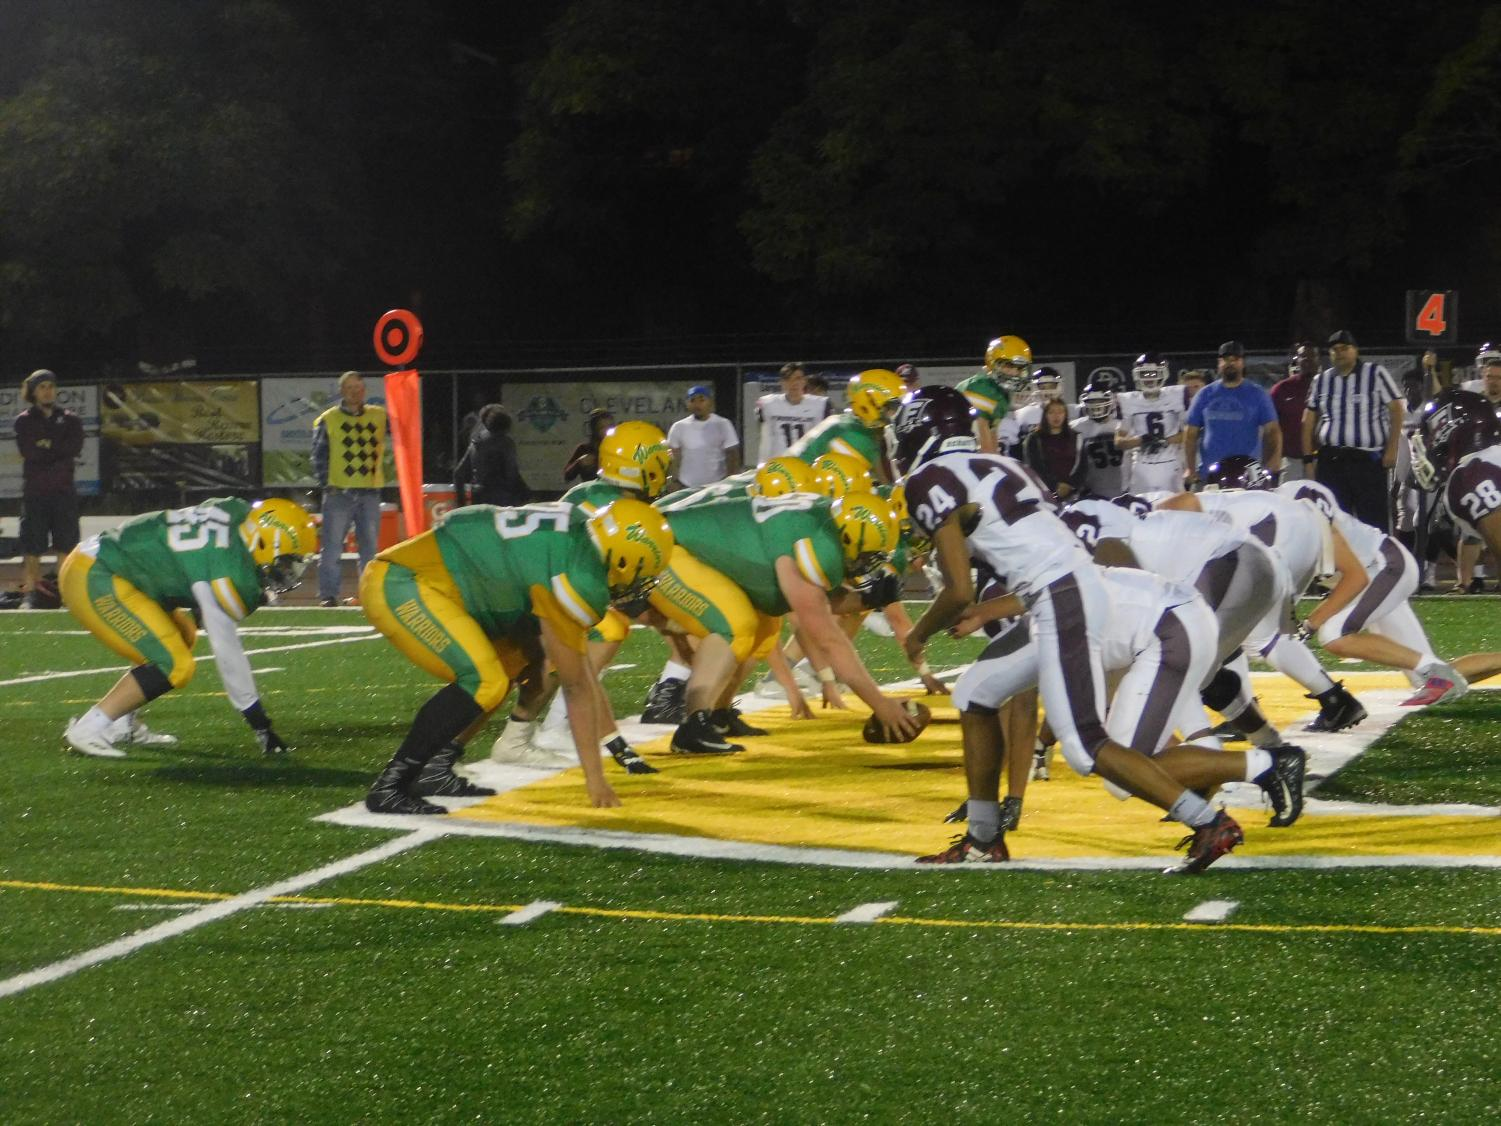 The Warriors on the drive against Franklin, Aug. 31 in the season opener. The Warriors lost a heartbreaker 20-14 in overtime.